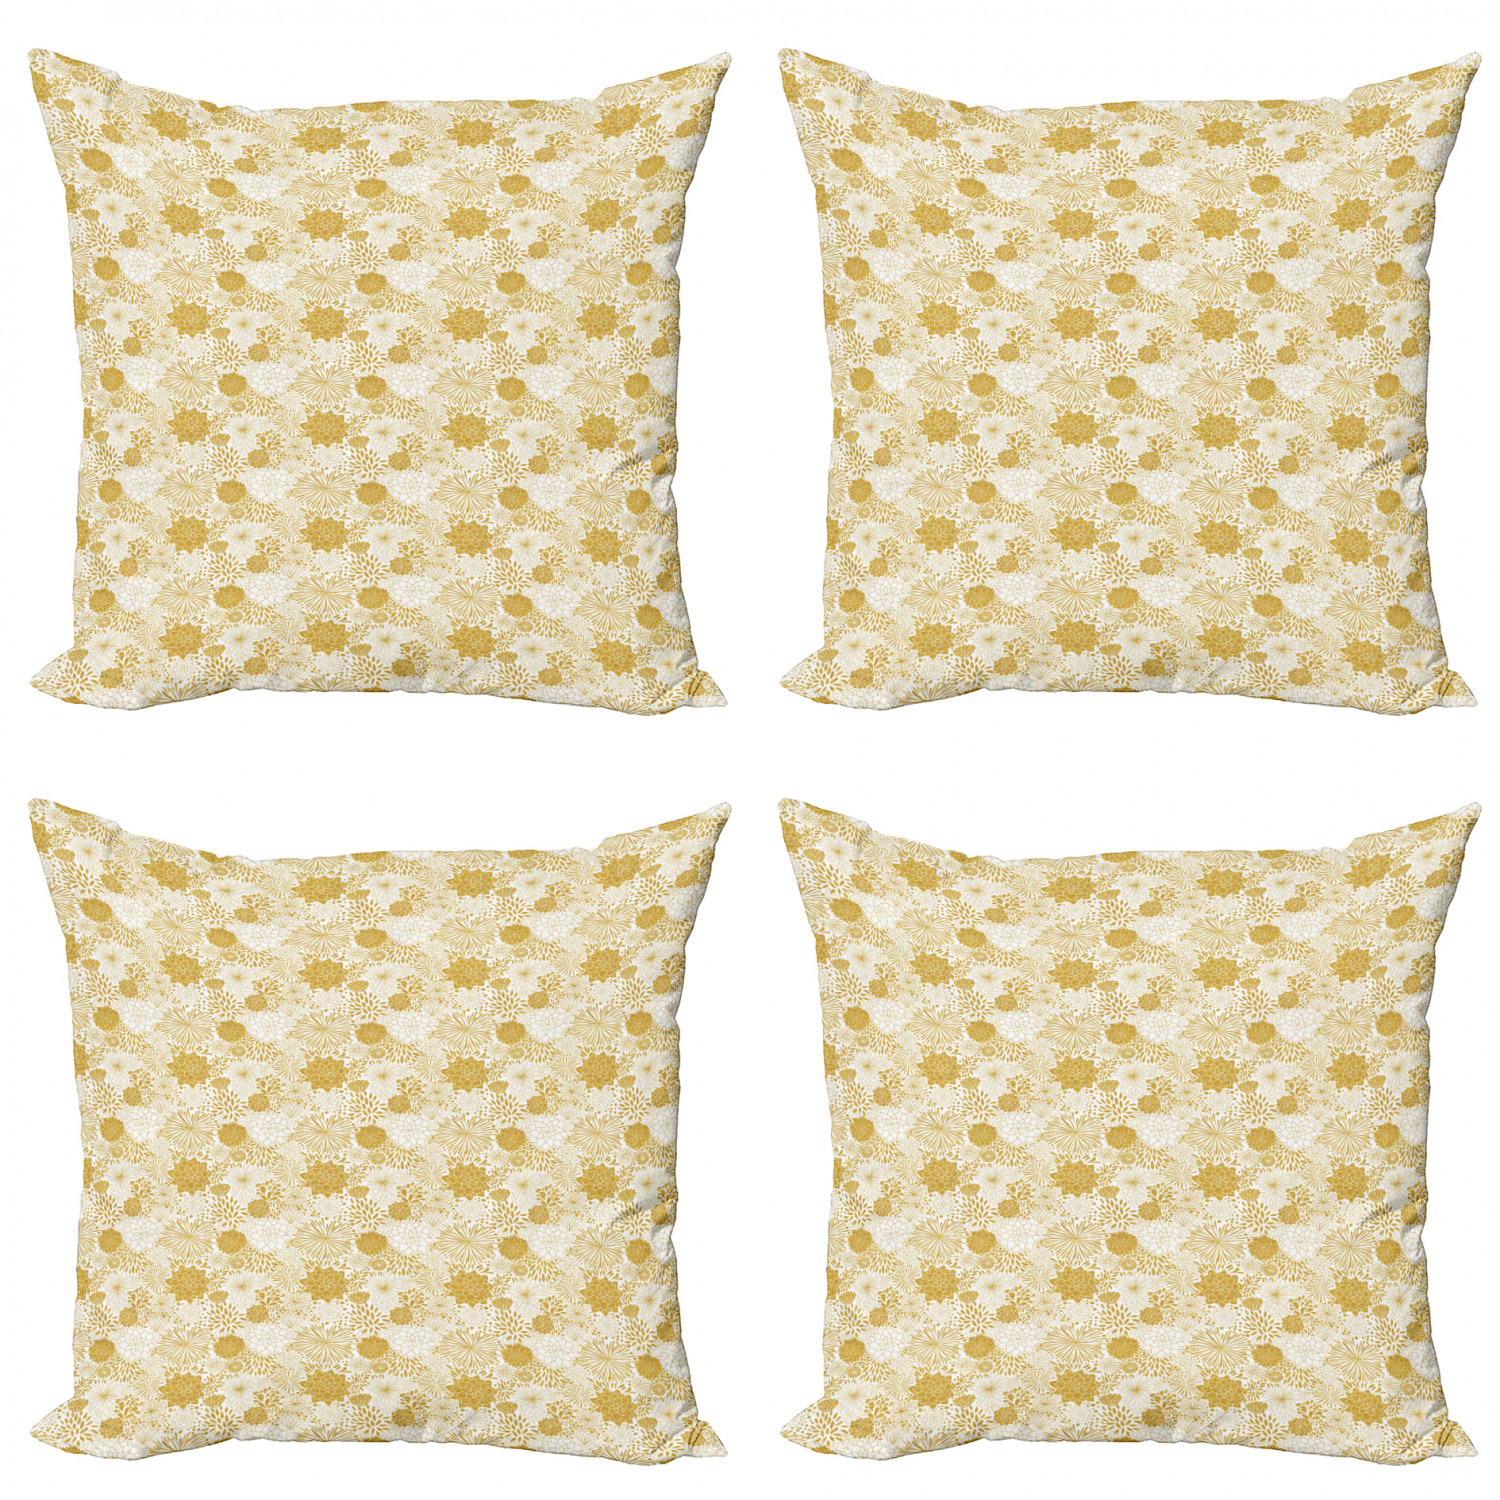 Ambesonne-Floral-Drawings-Cushion-Cover-Set-of-4-for-Couch-and-Bed-in-4-Sizes thumbnail 42